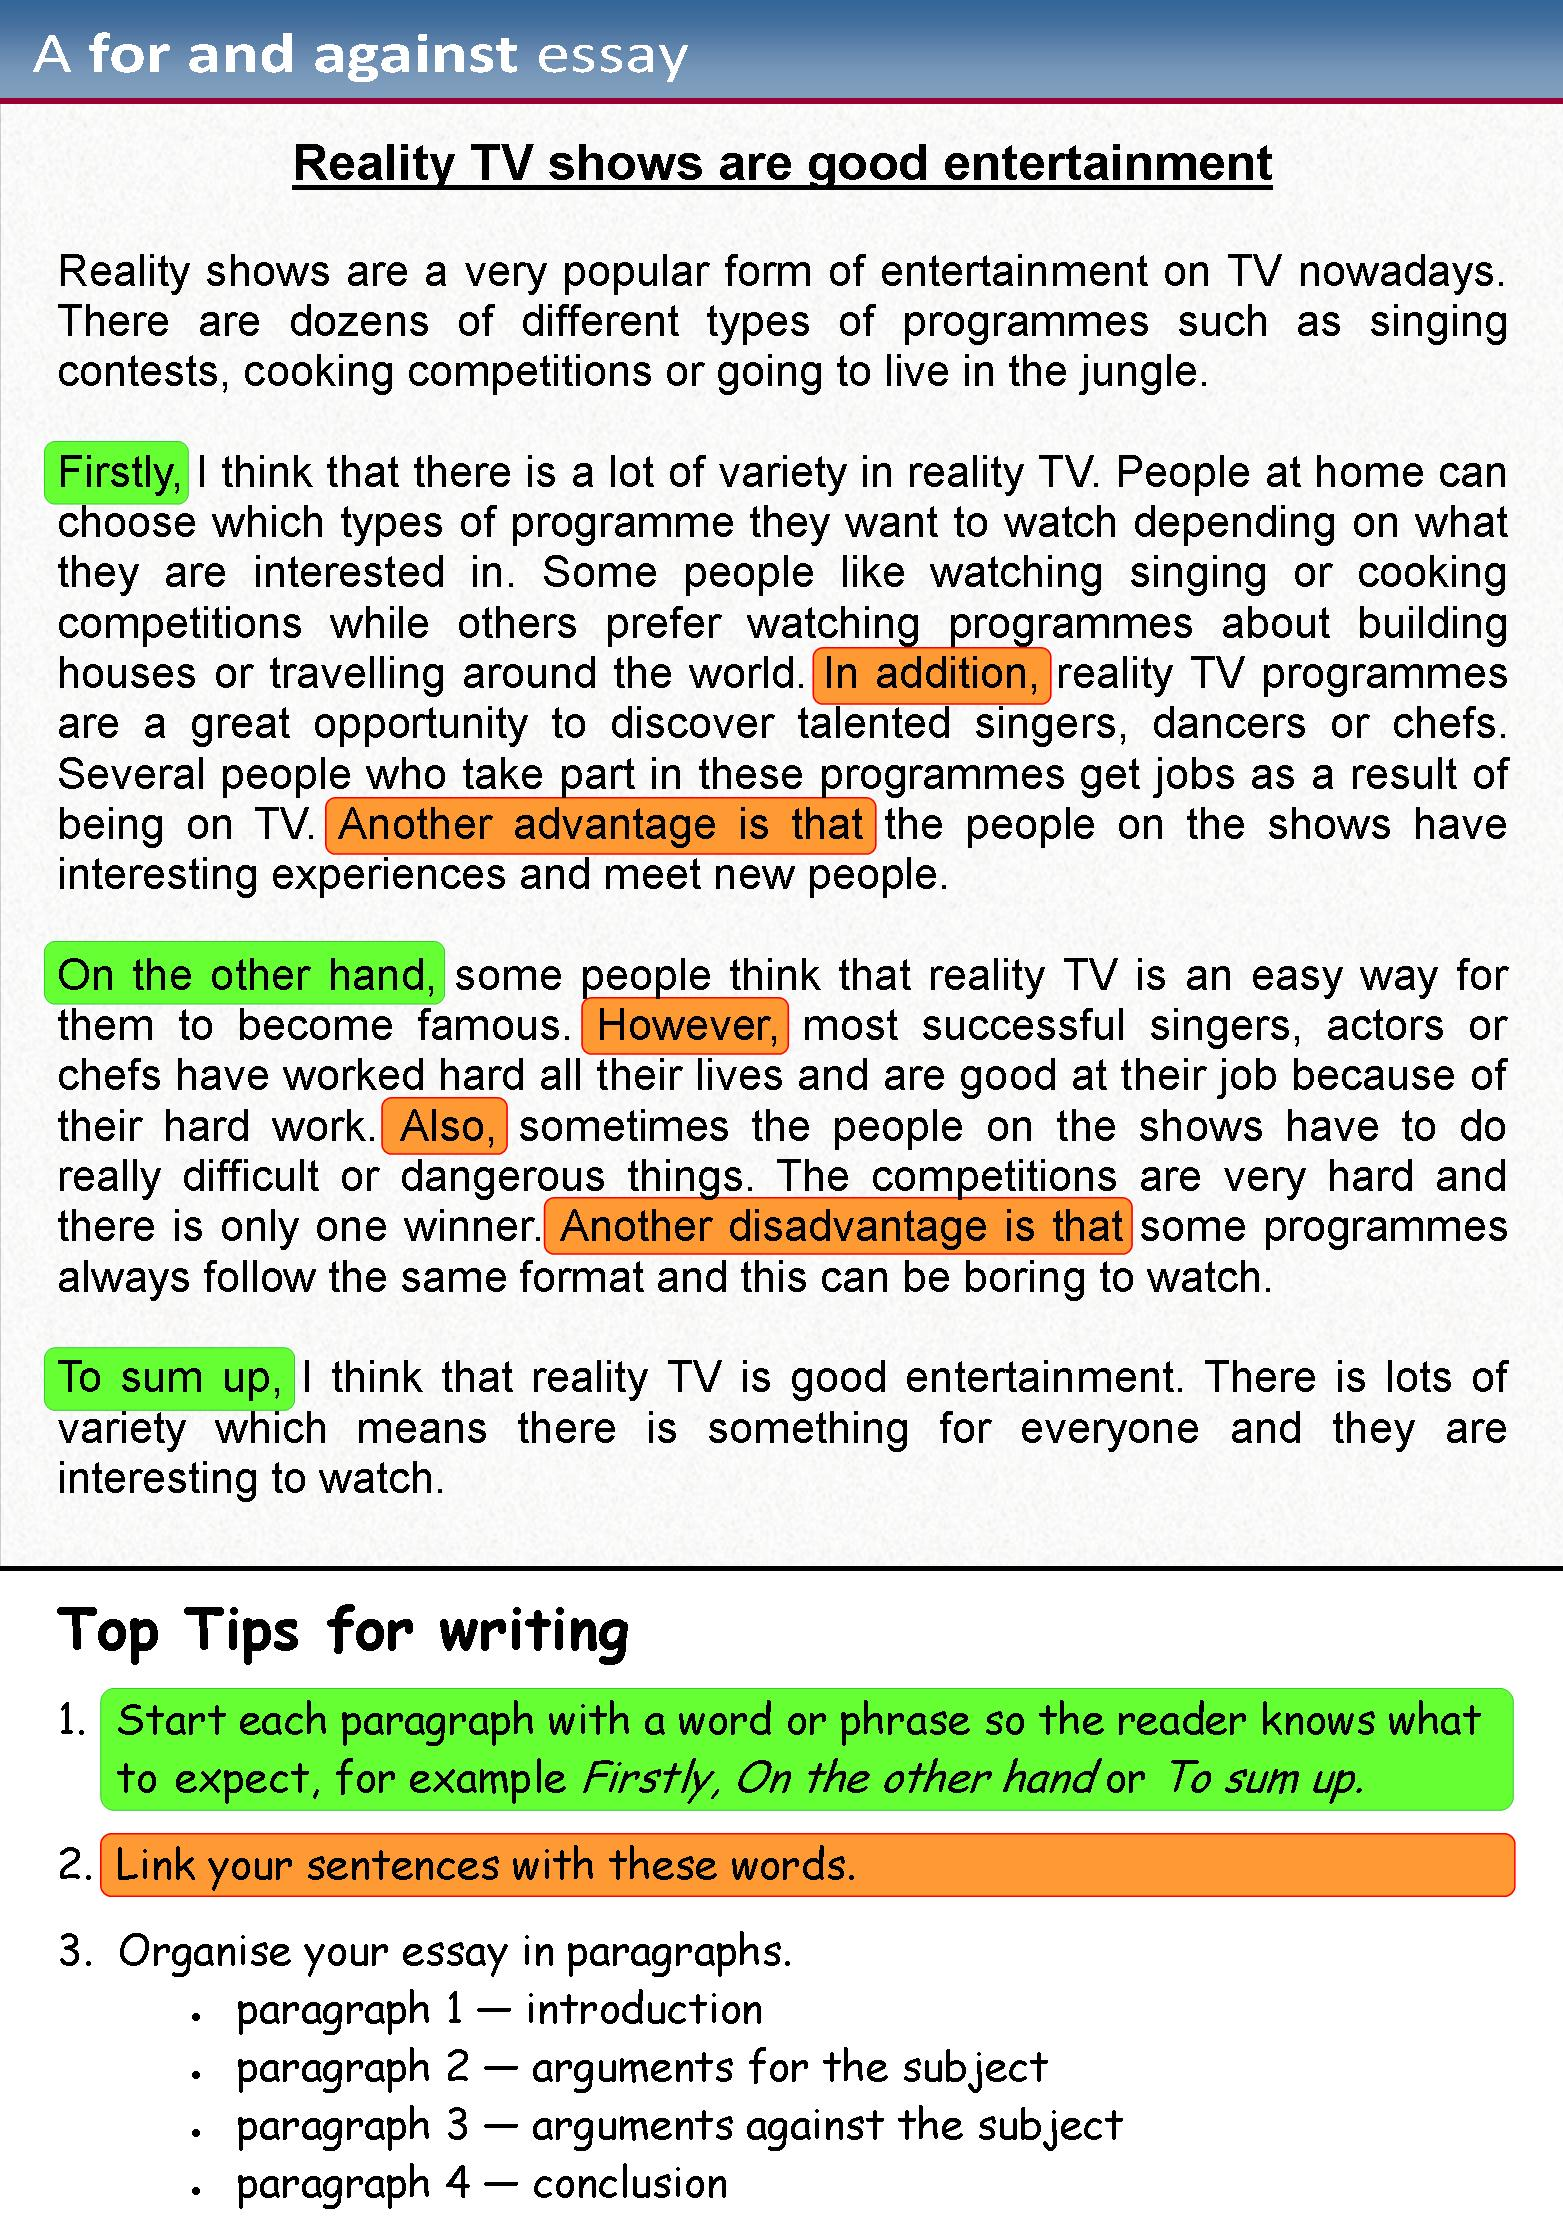 005 Day Without Tv Essay Example For Against 1 Outstanding A Full